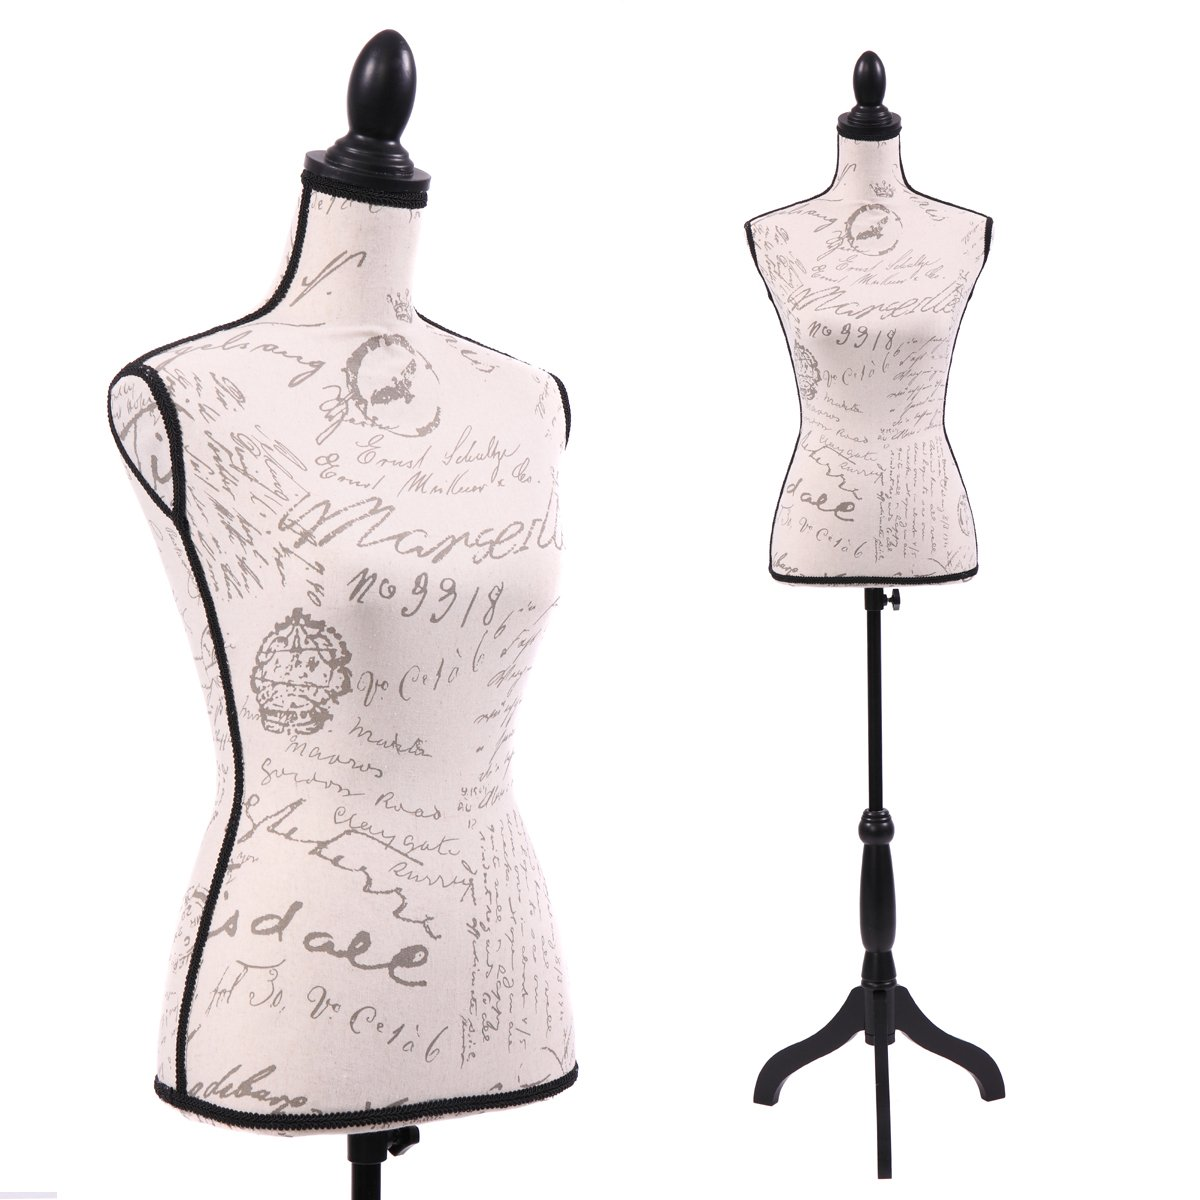 JAXPETY Female Mannequin Torso Clothing Display W/Black Tripod Stand New Beige (Printing-Beige) by JAXPETY